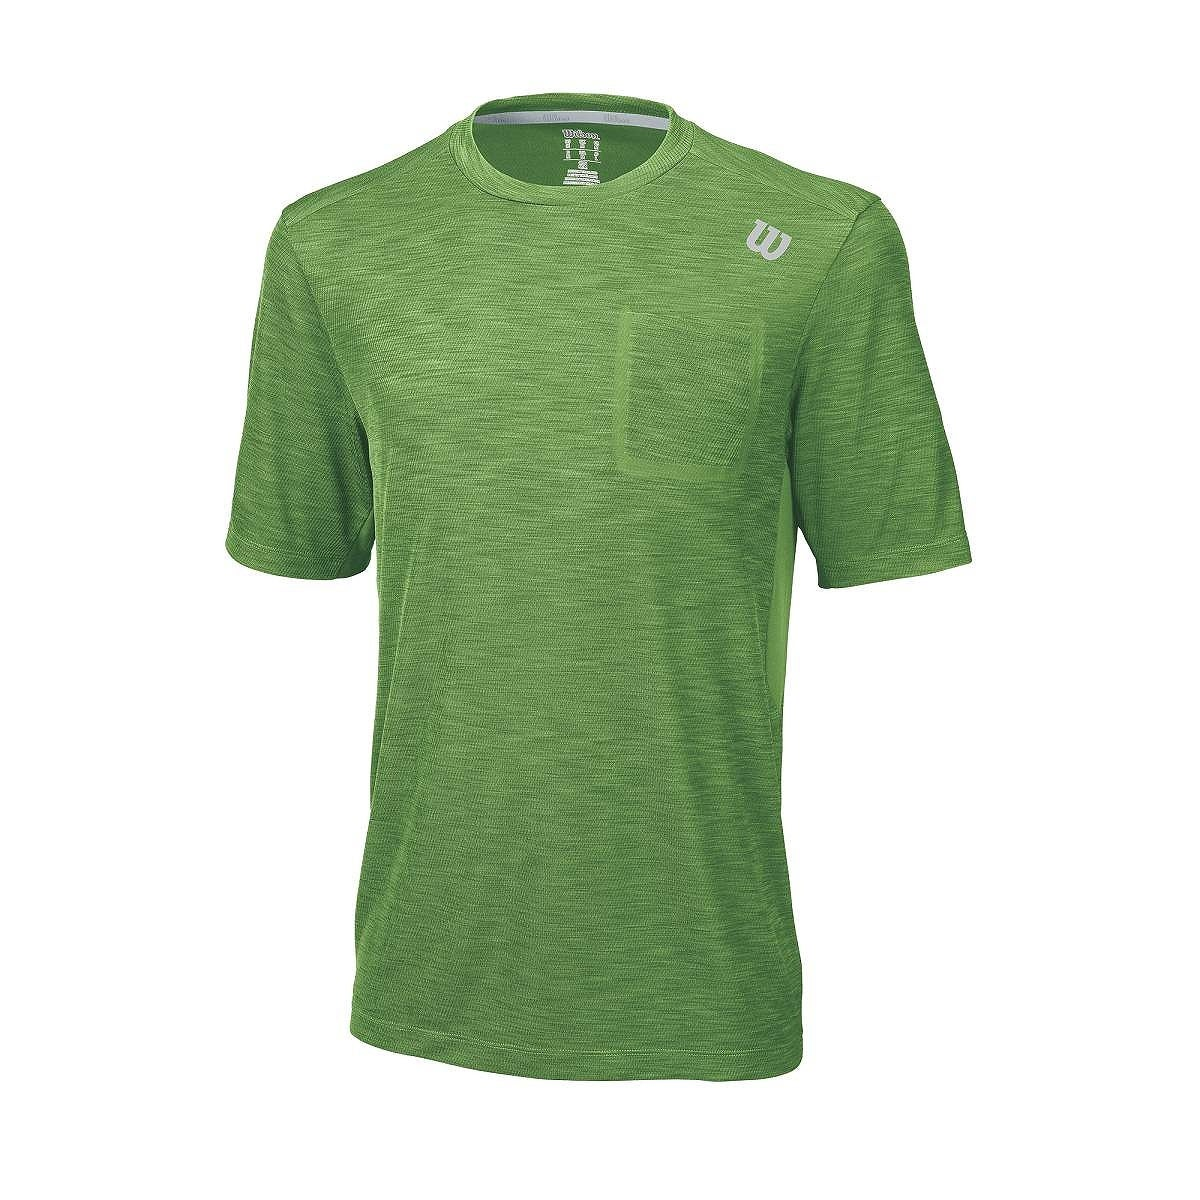 f311d38de544a Tennis Clothing